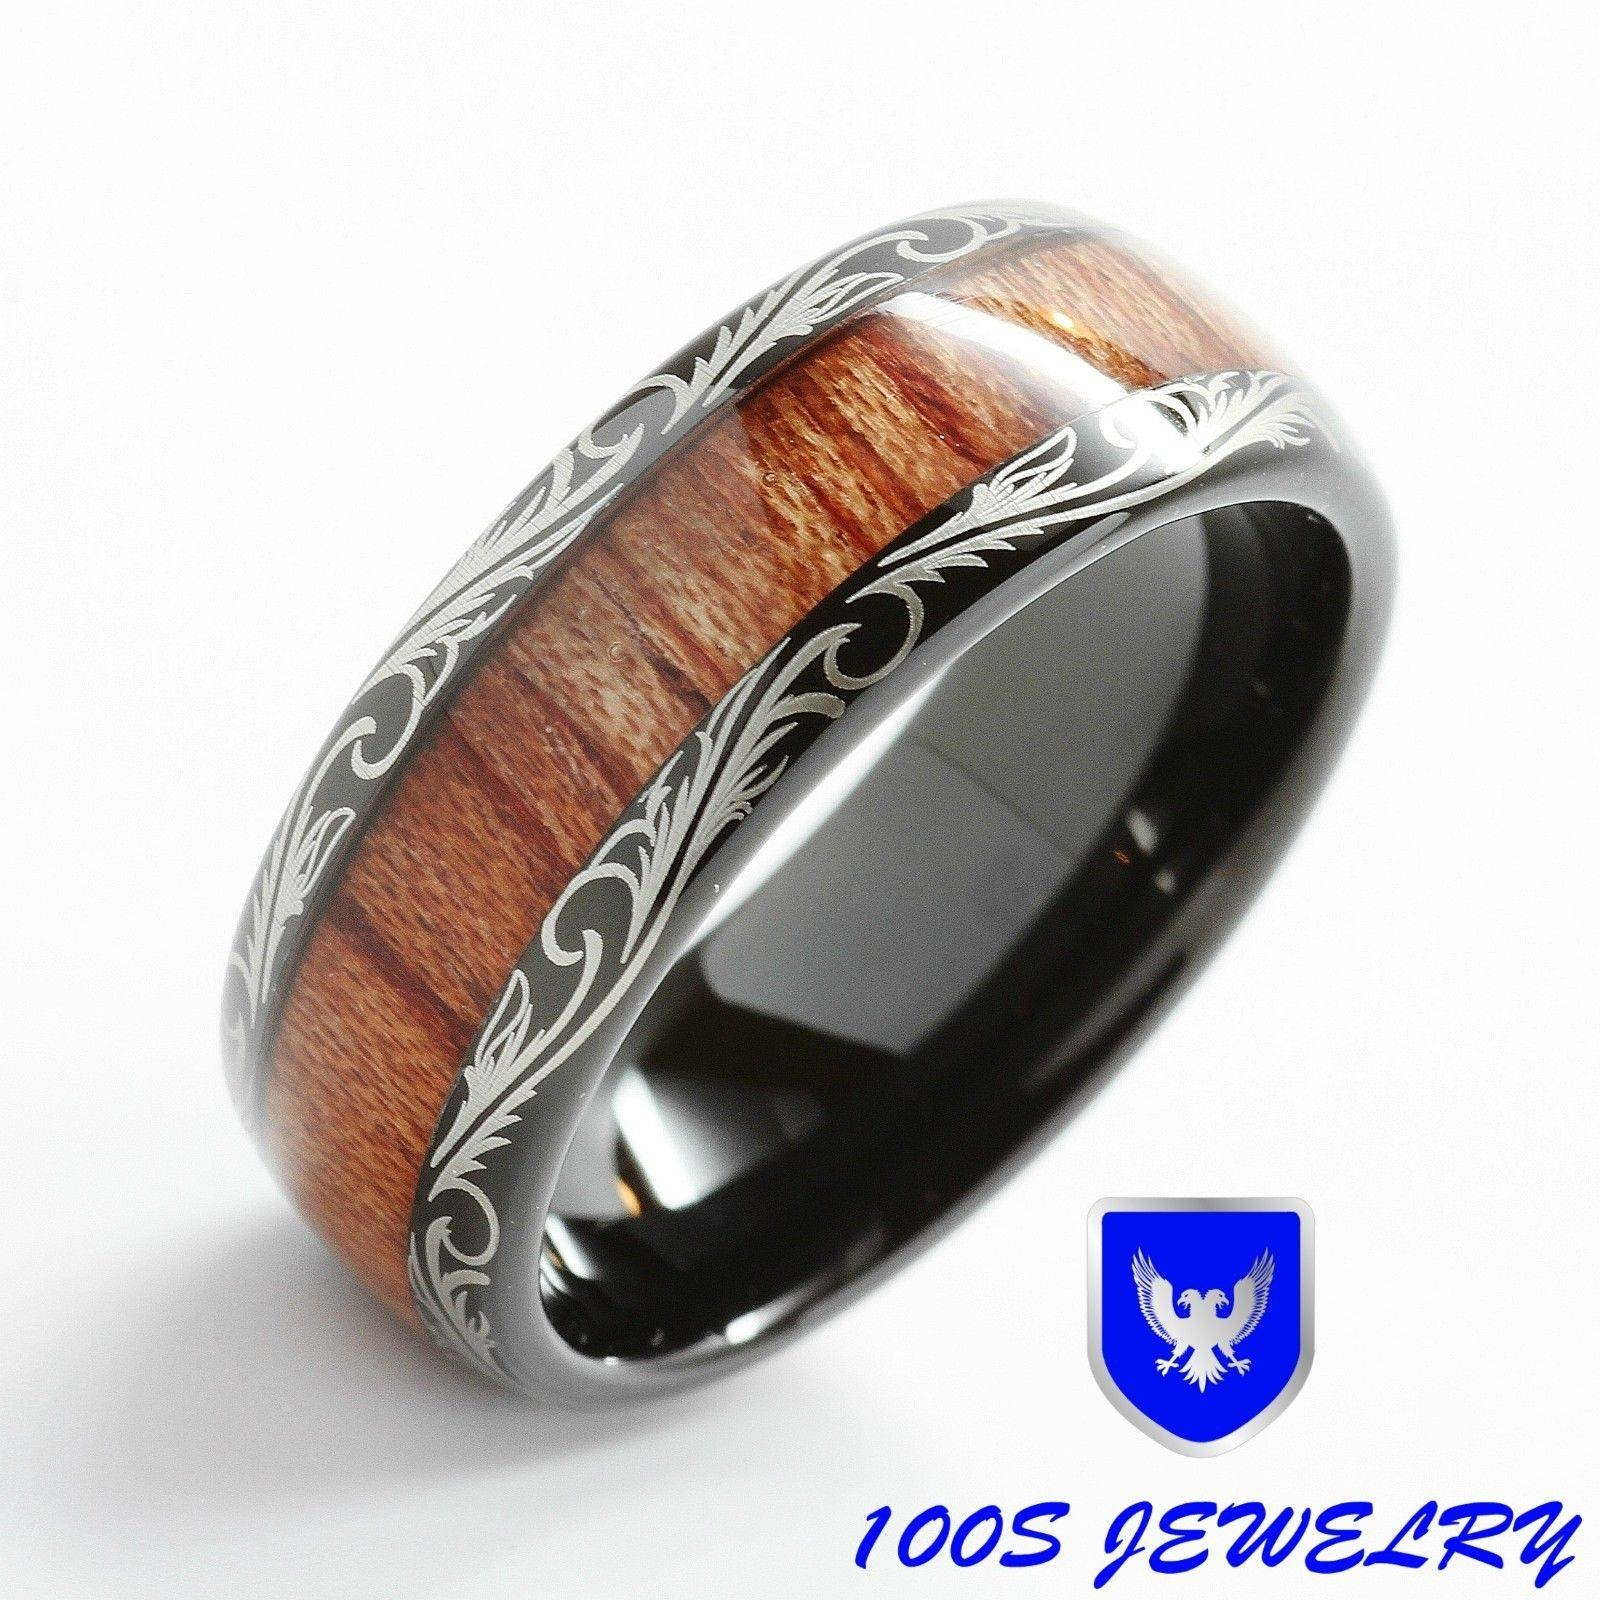 Mens Women Wedding Band Black Tungsten Ring Koa Wood Inlay Comfort Throughout Men's Wedding Bands Size  (View 5 of 15)